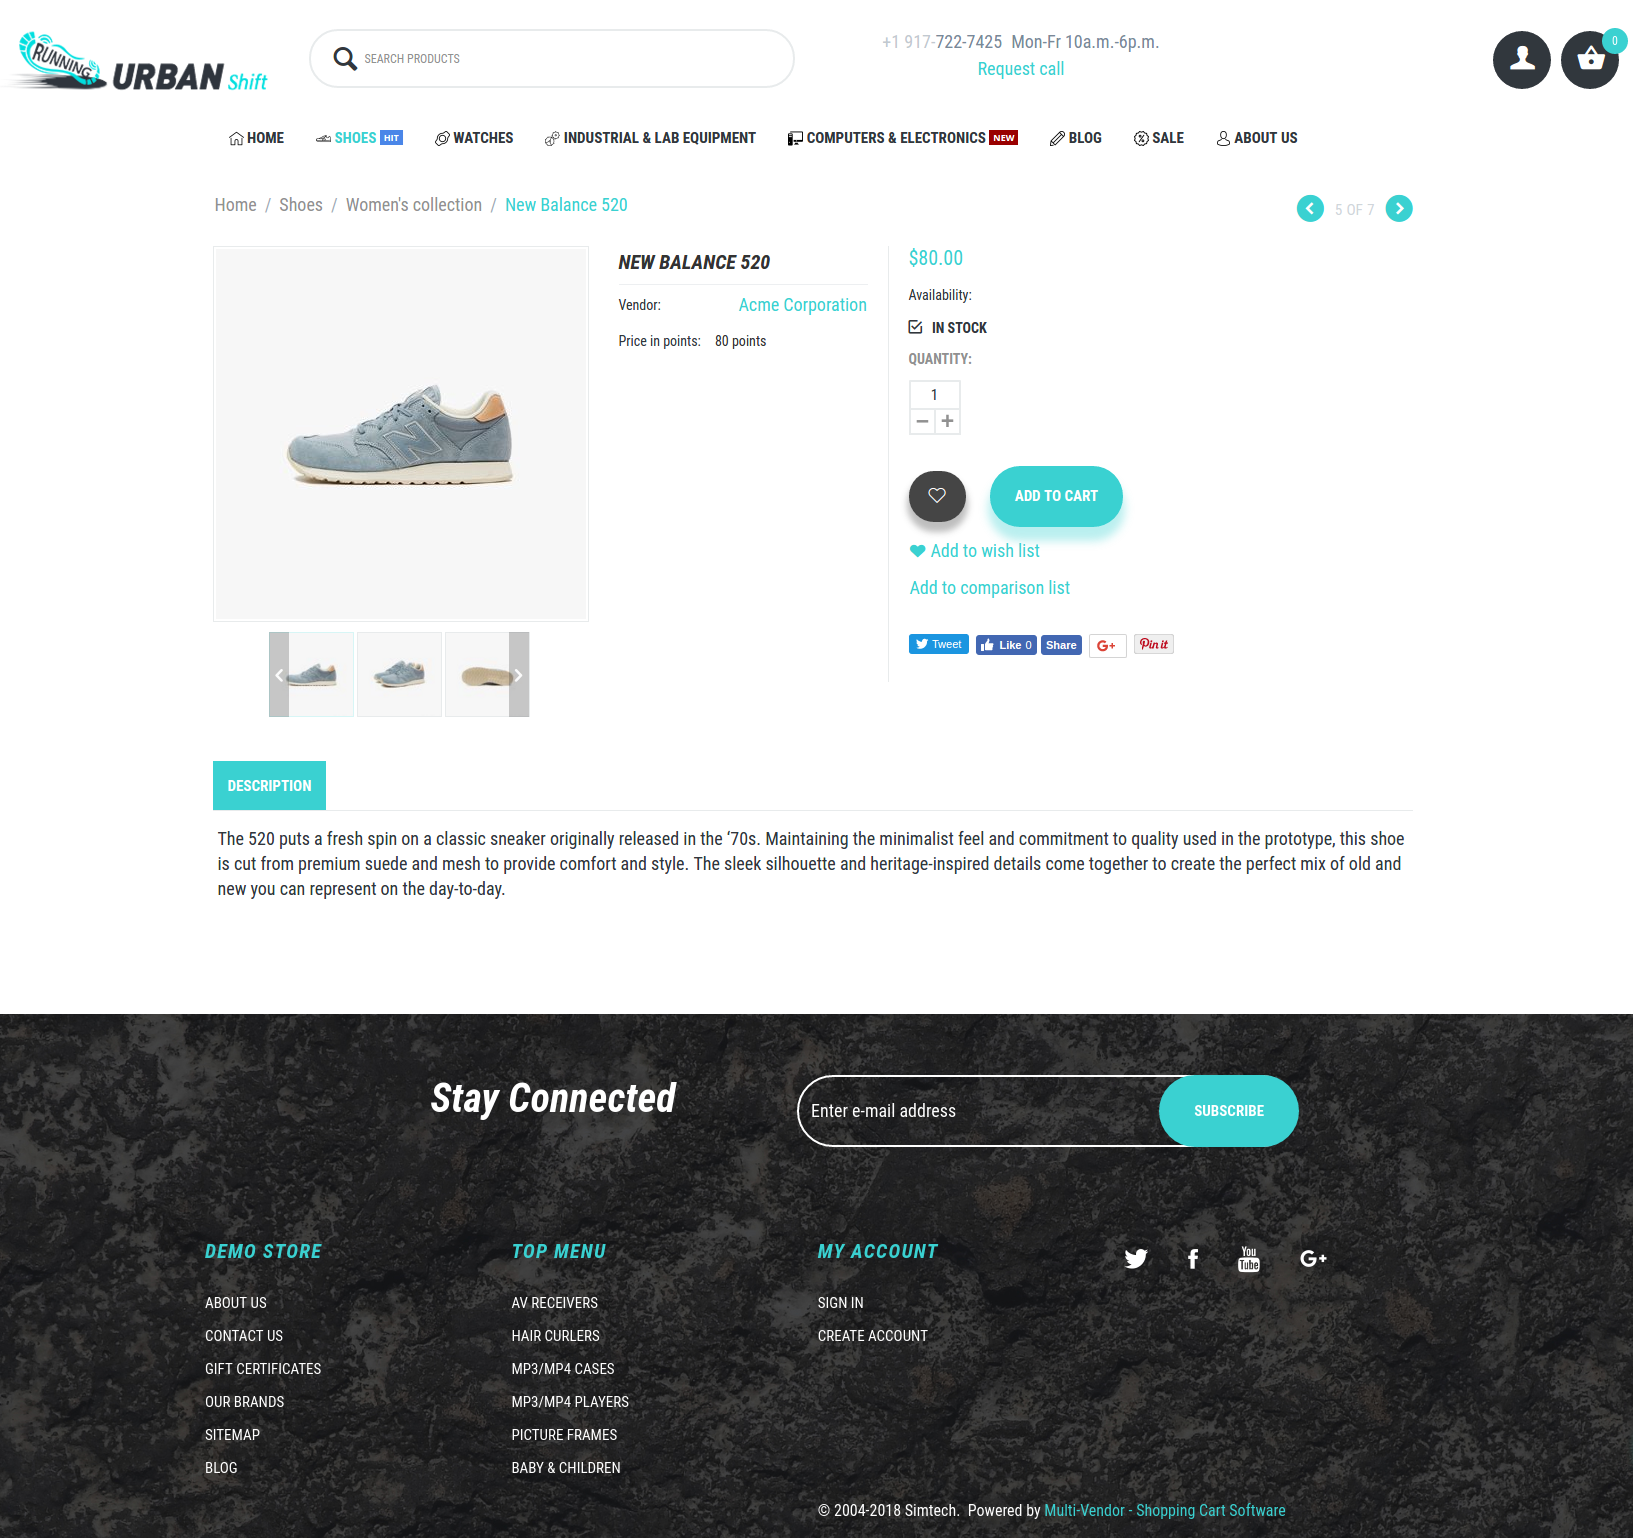 urban-shift-product-page.png